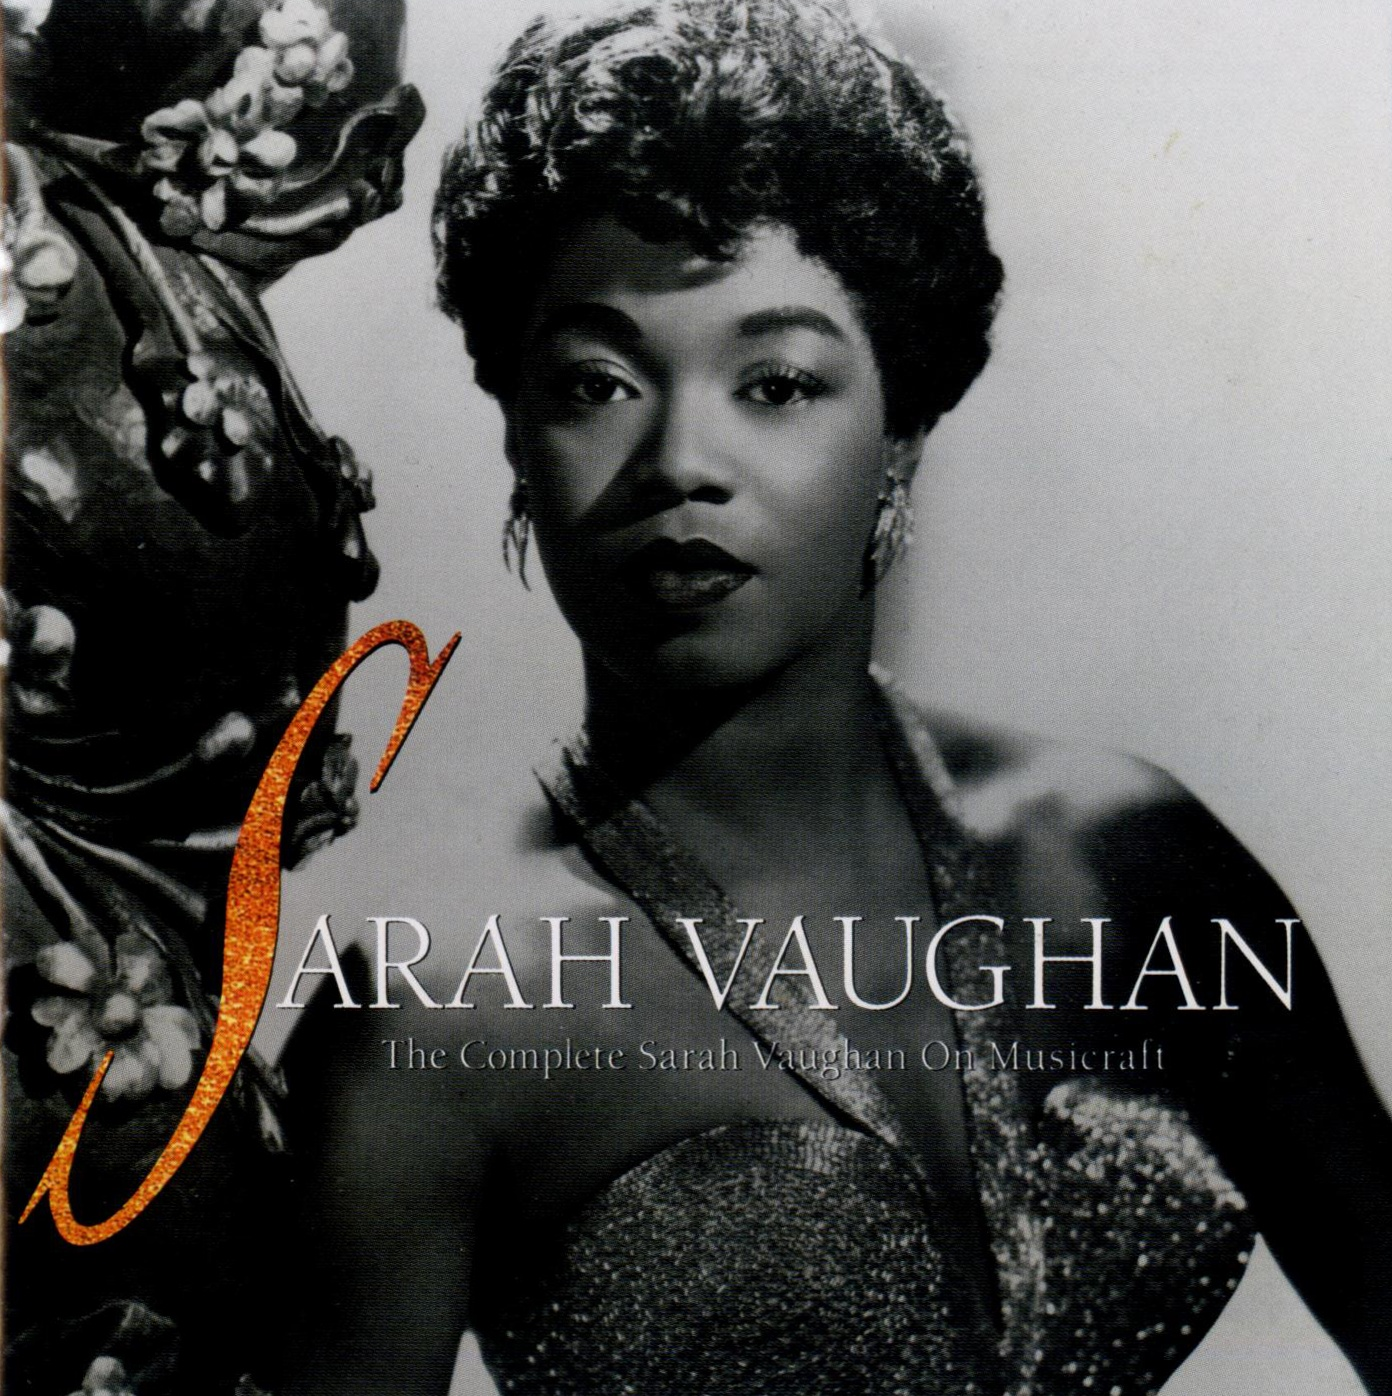 a biography of sarah louis vaughan born in newark new jersey Histories and biographies of the famous people from new jersey you may not even realize many of these famous people were born in new jersey or notable associated with new jersey, including actors, actresses, explorers, historical figures, inventors, musicians, novelists, professional athletes.